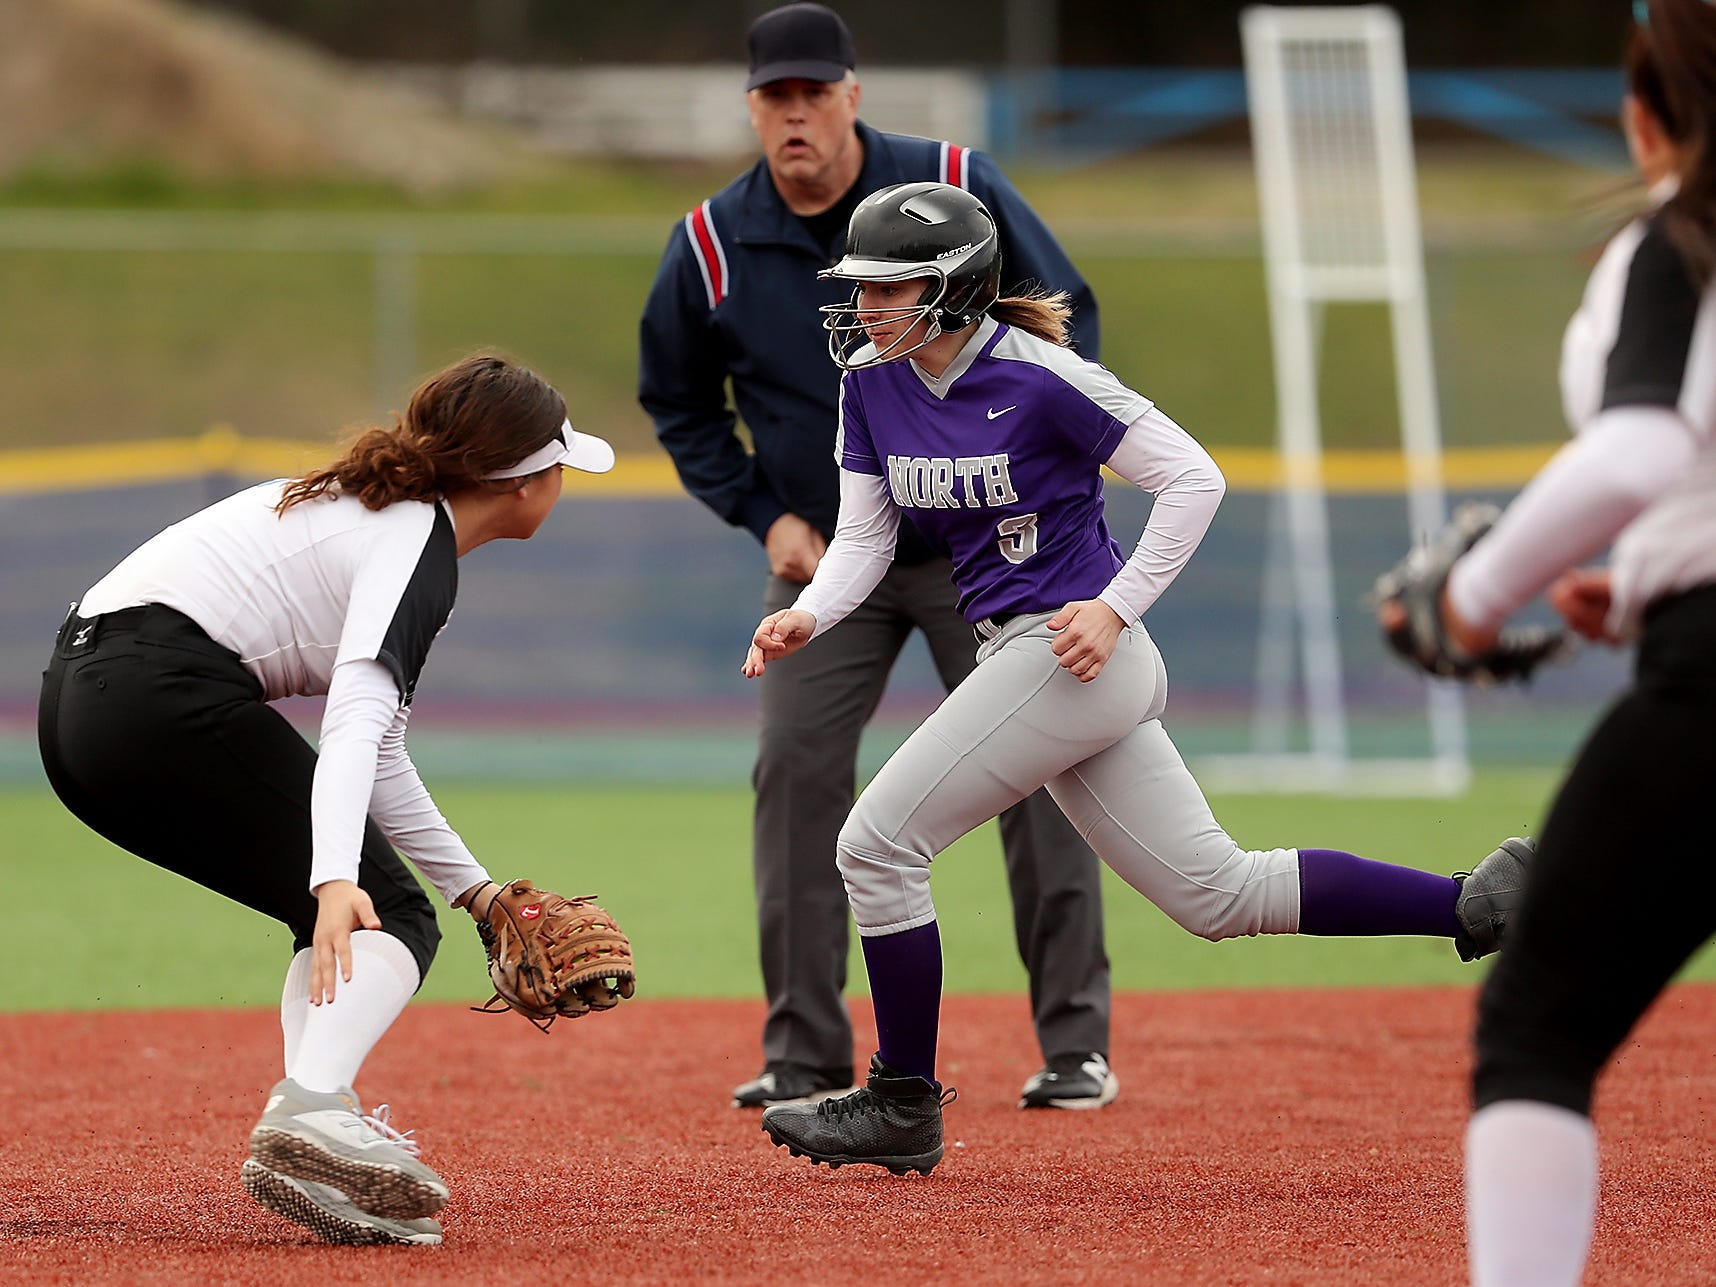 North Kitsap's Olivia Holmbery (3) tries to make a run around Olympic's Vanisa Ivie (left) who has the ball in glove at Gene Lobe Field on Wednesday, March 27, 2019. Holmbery was tagged out by Ivie.